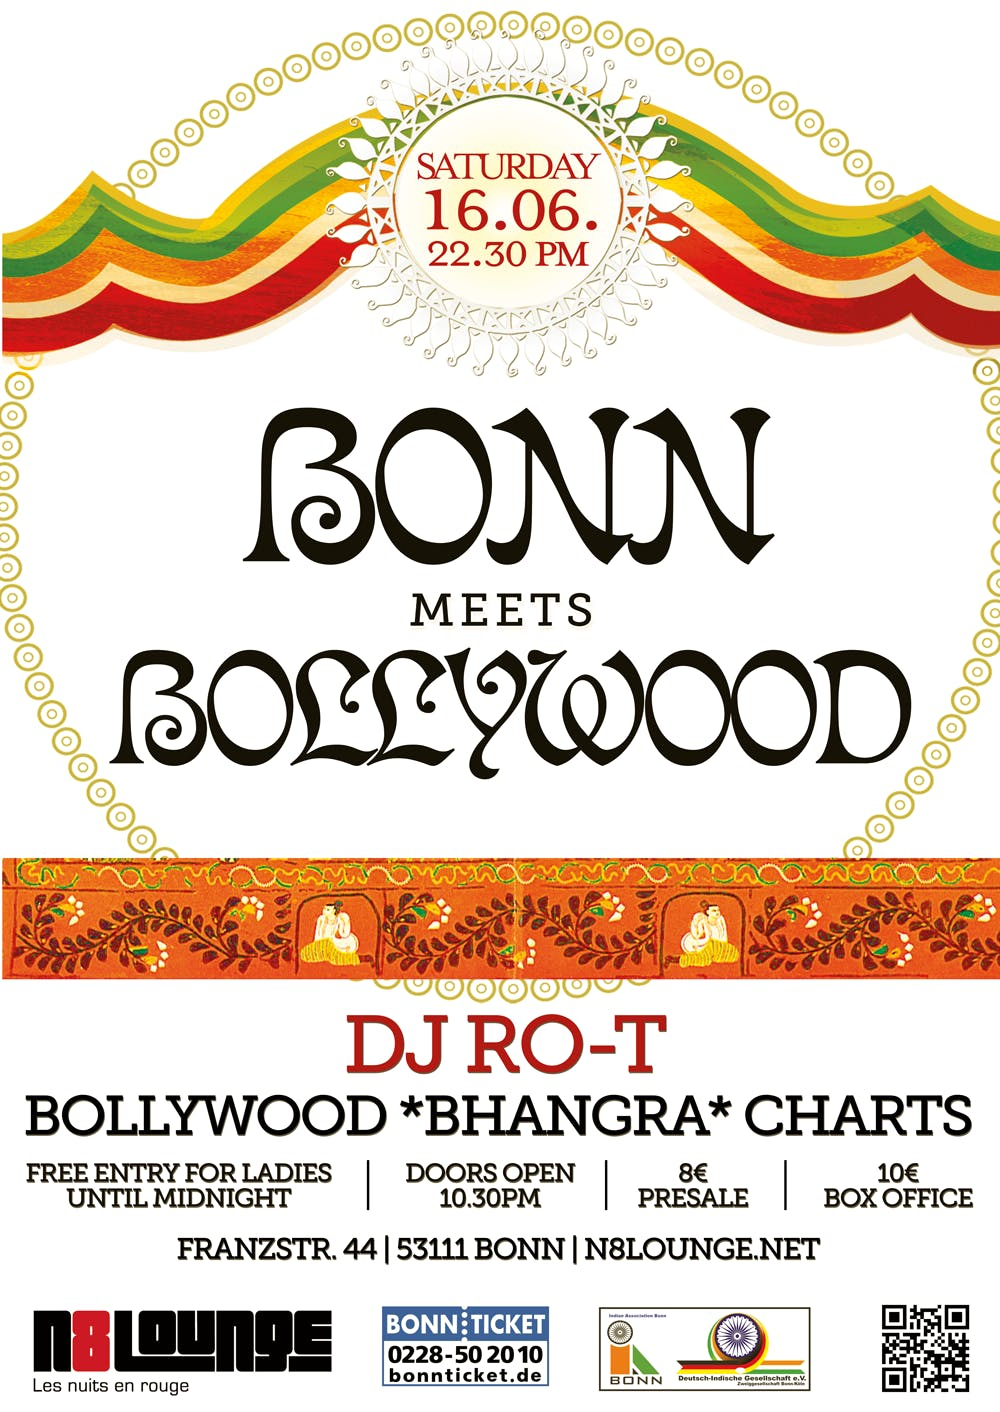 Bonn meets Bollywood